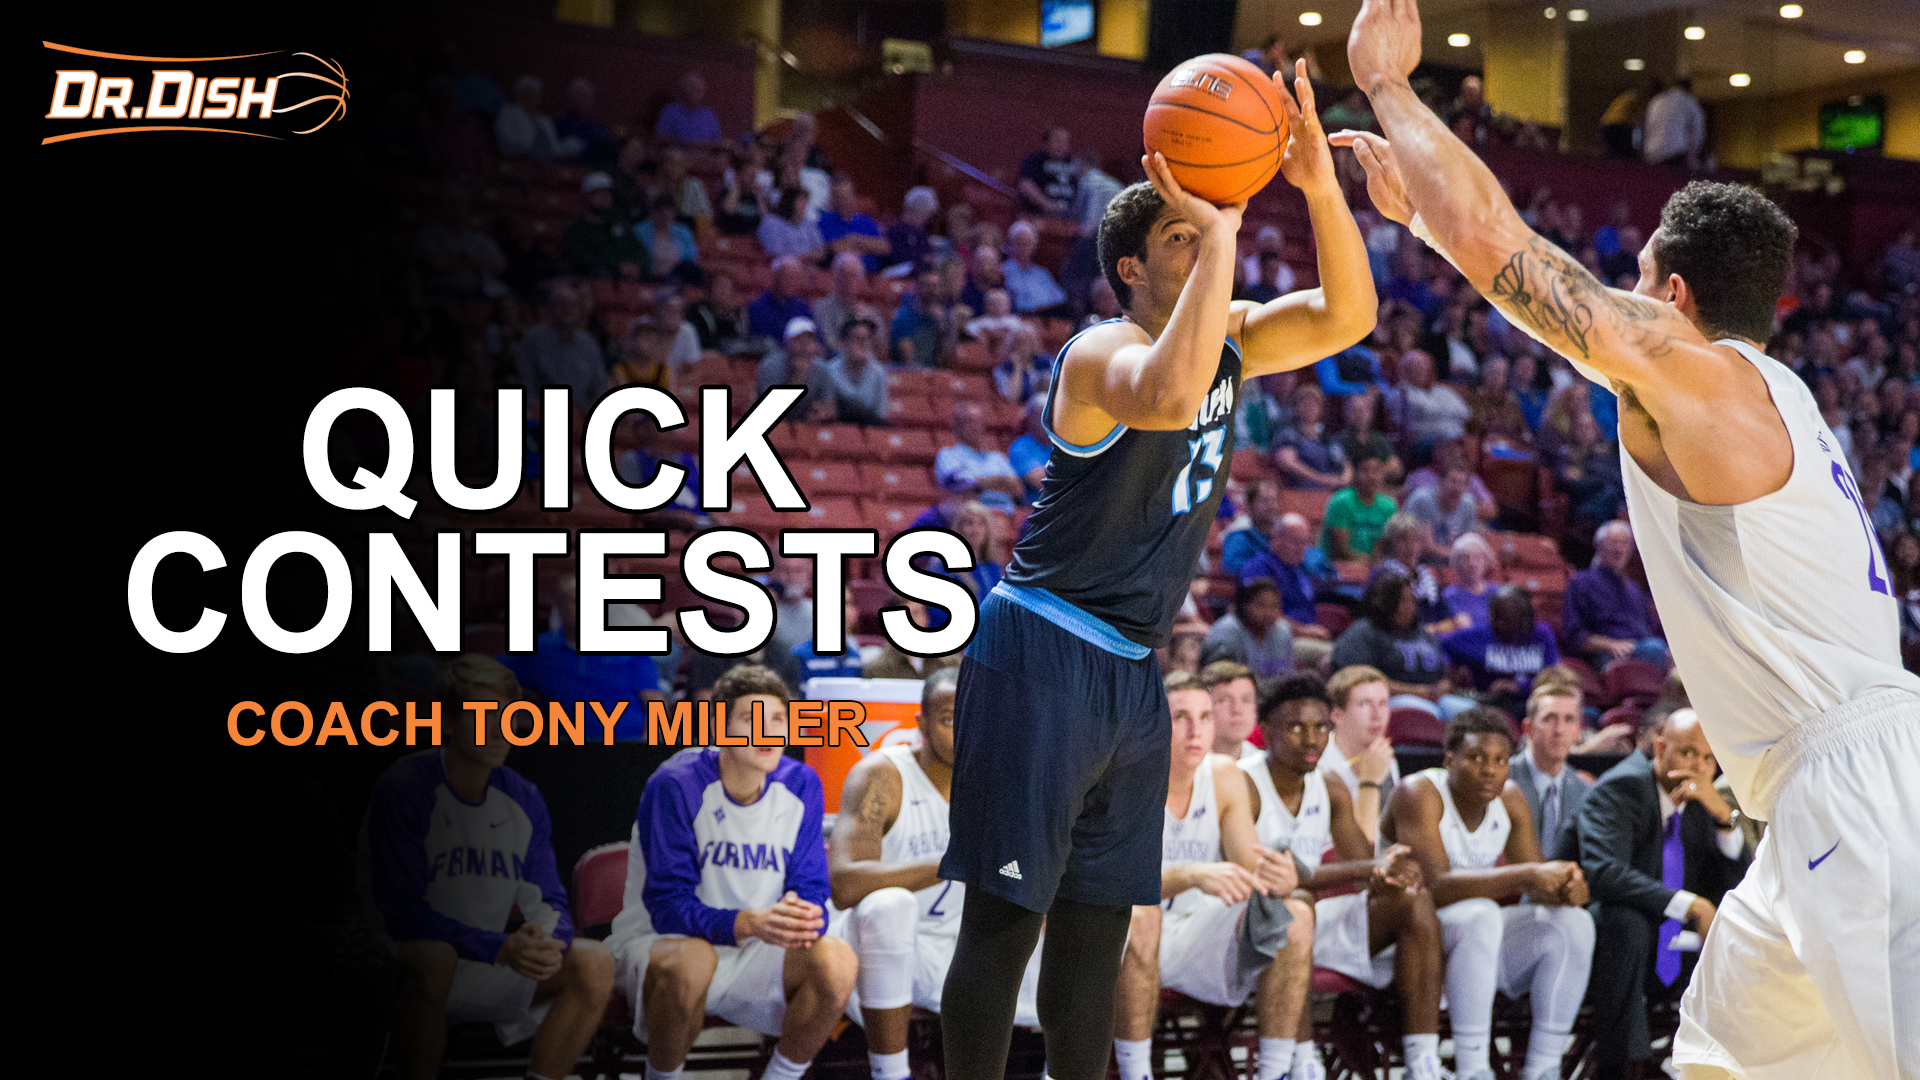 Basketball Drills: Quick Contests with Coach Tony Miller